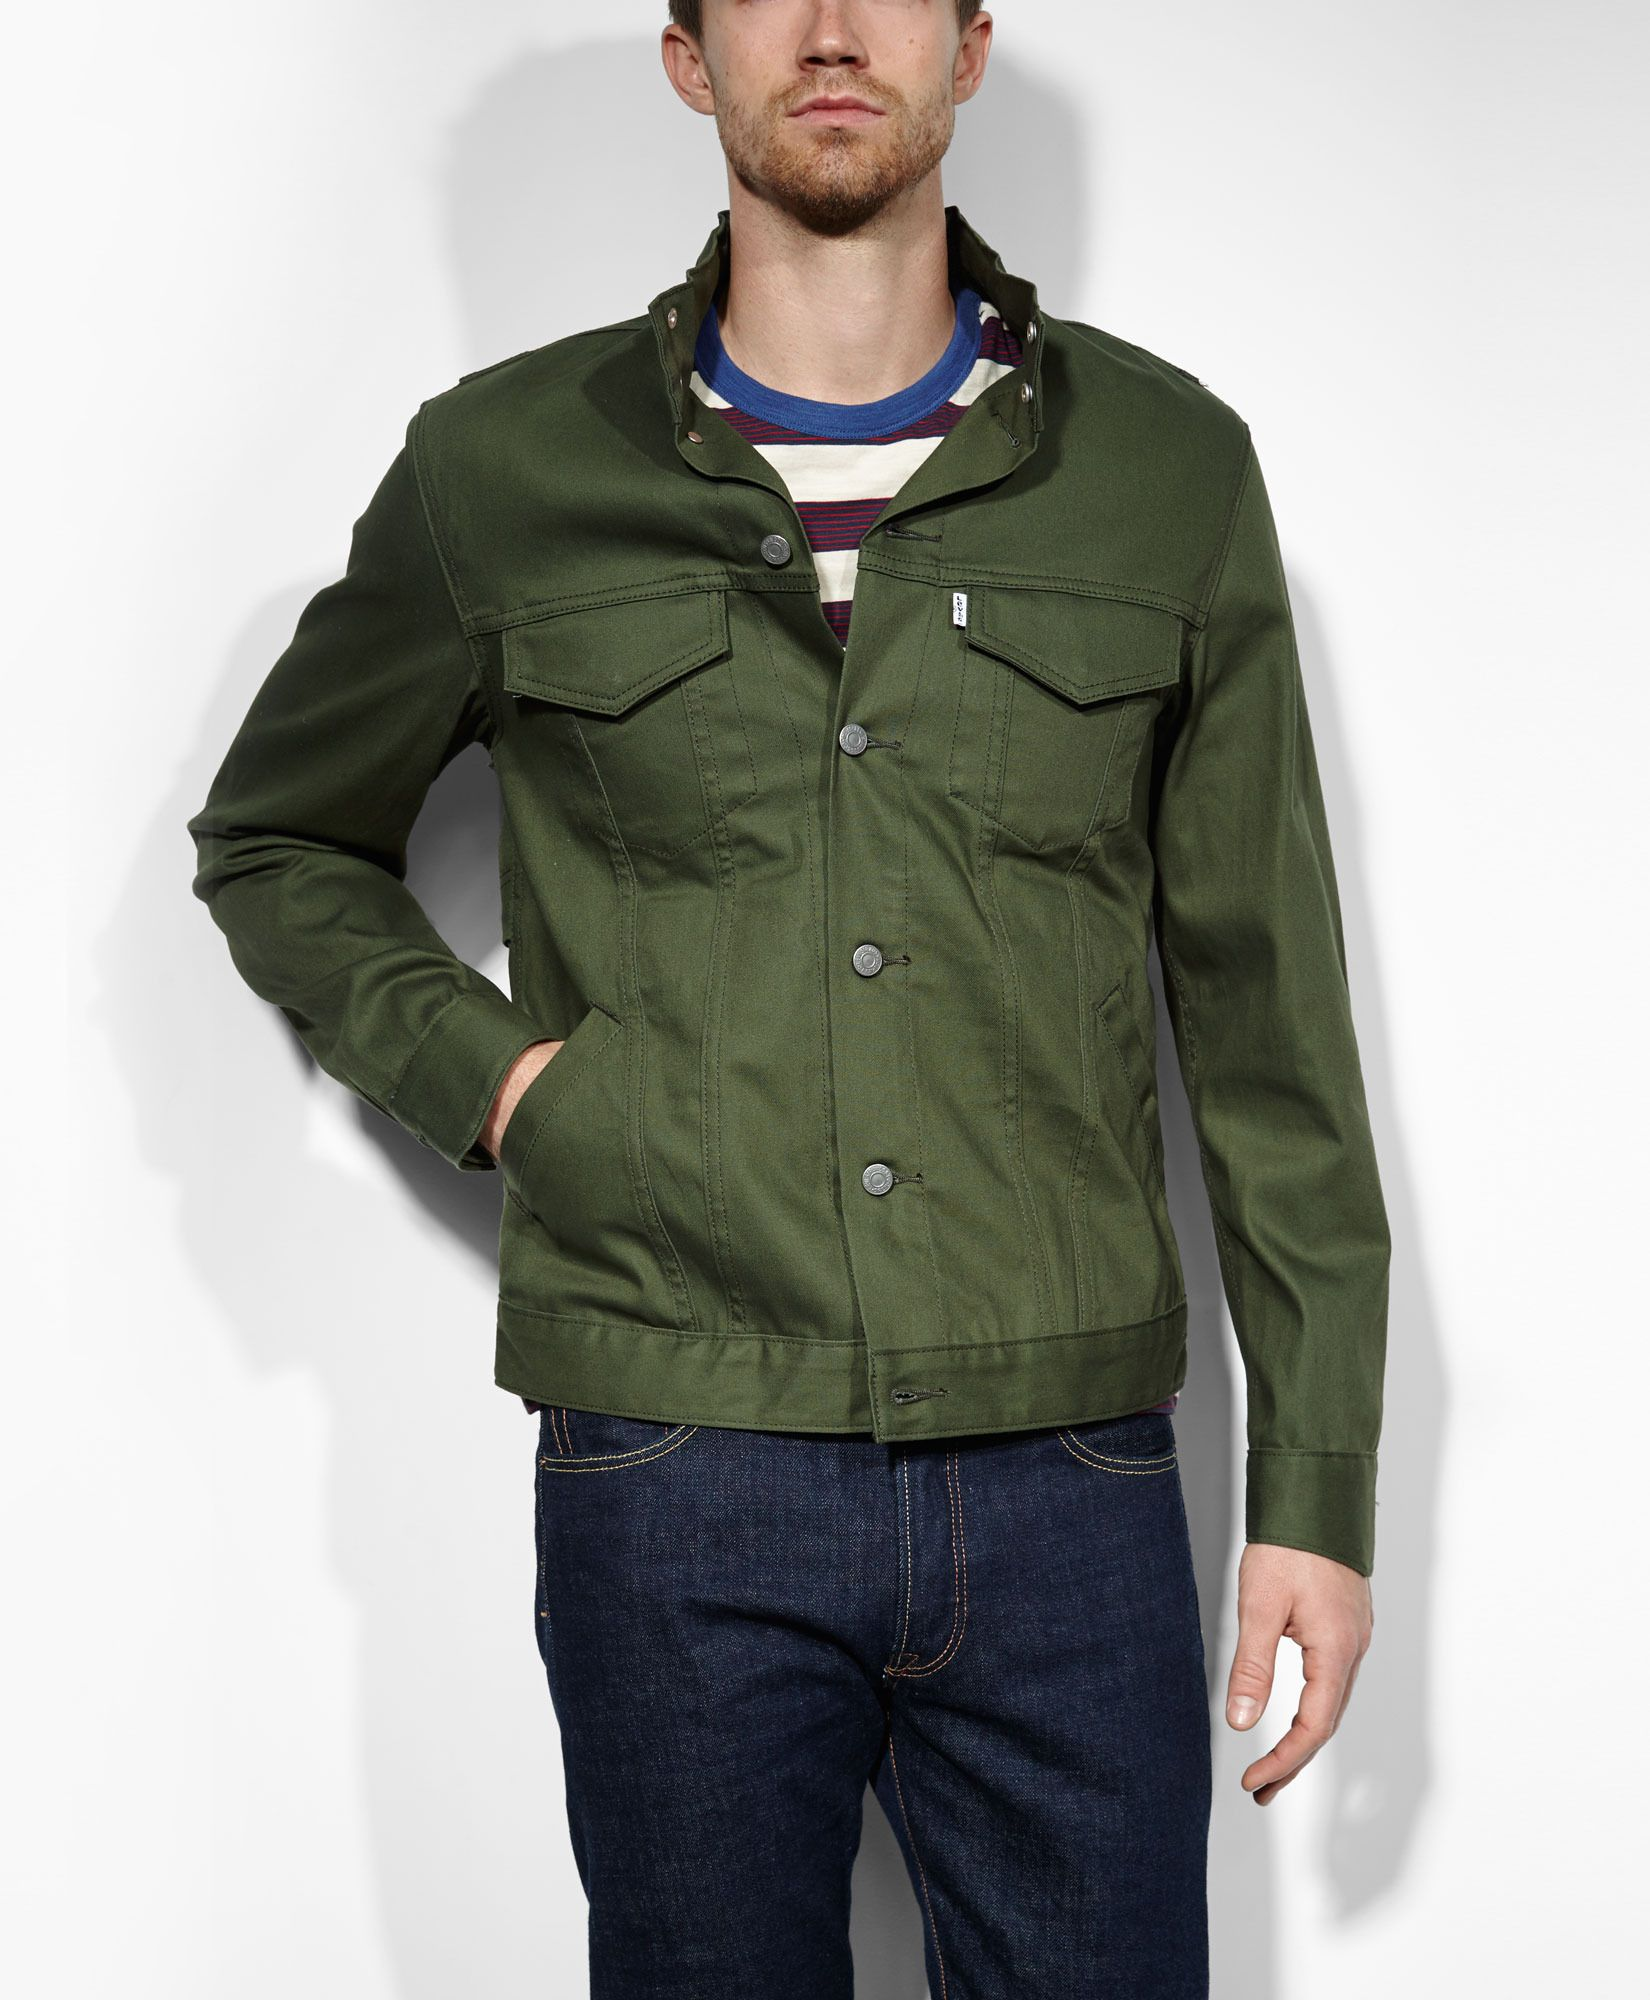 Jeans, Jackets \u0026 Clothing | Levi\u0027s� Official Site. Field JacketsSpring  JacketsLevisMen\u0027s ClothingForestsMens FashionGreen JacketHooded ...